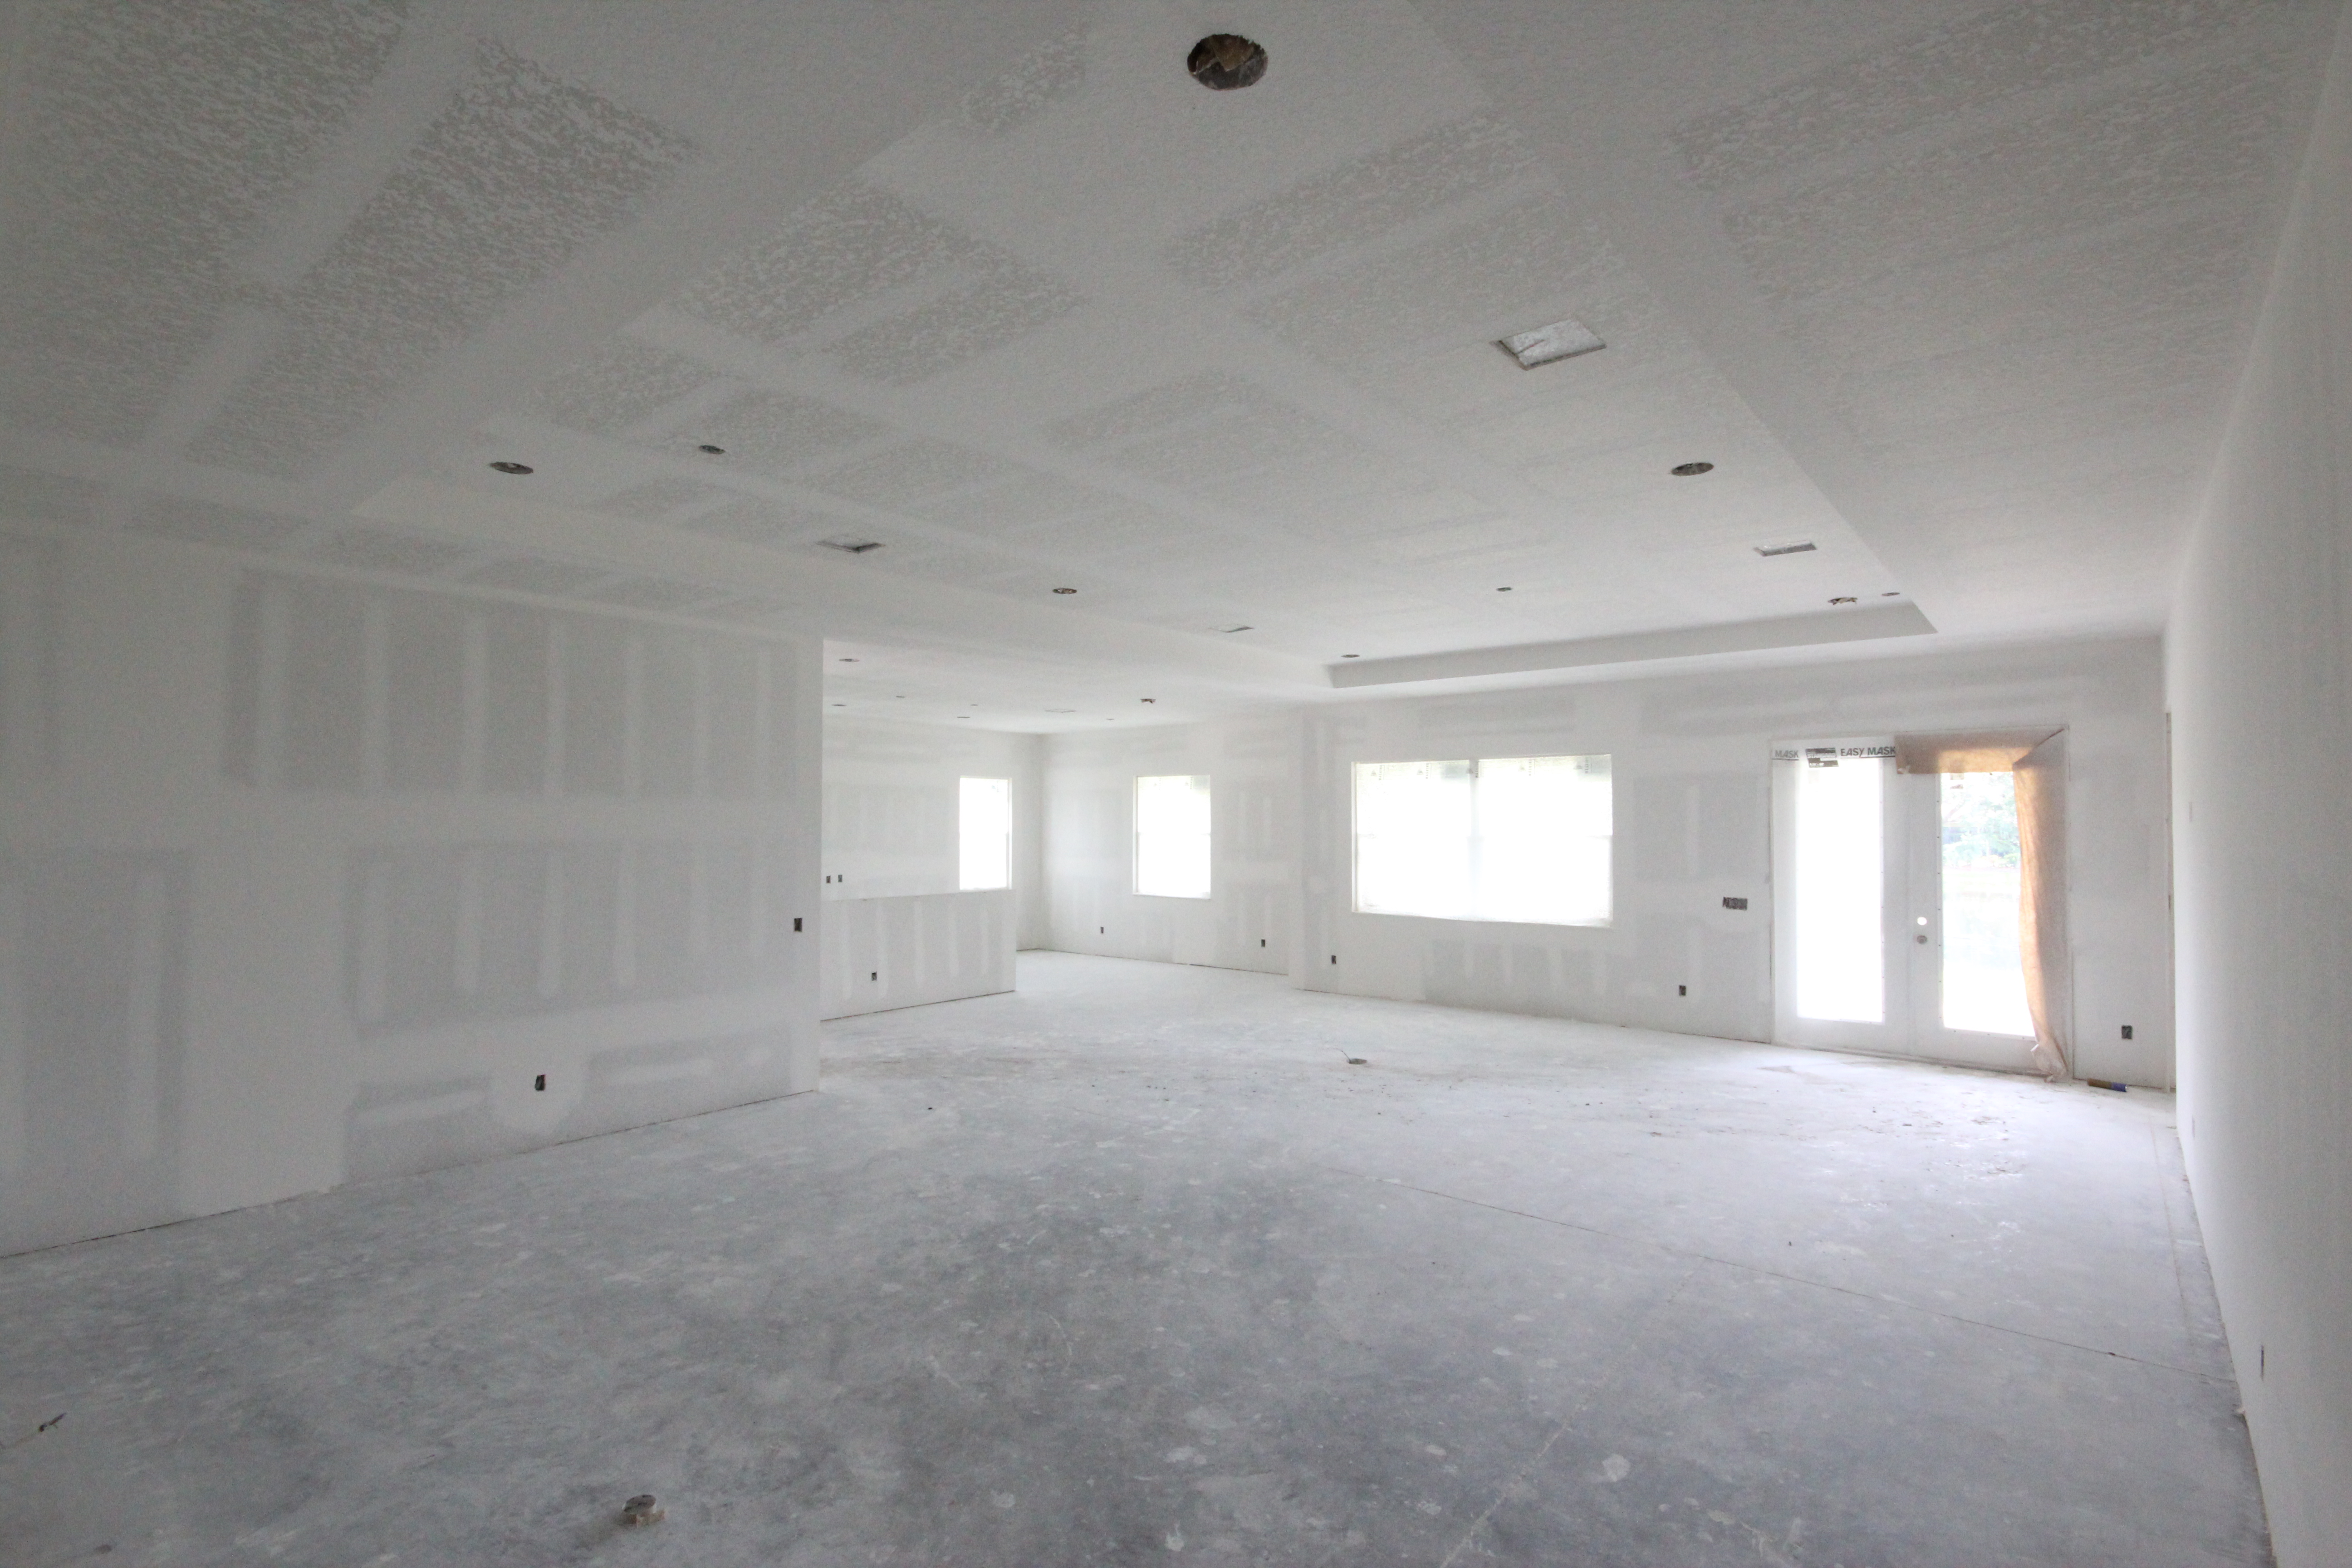 GREATROOM - Drywall ready for paint